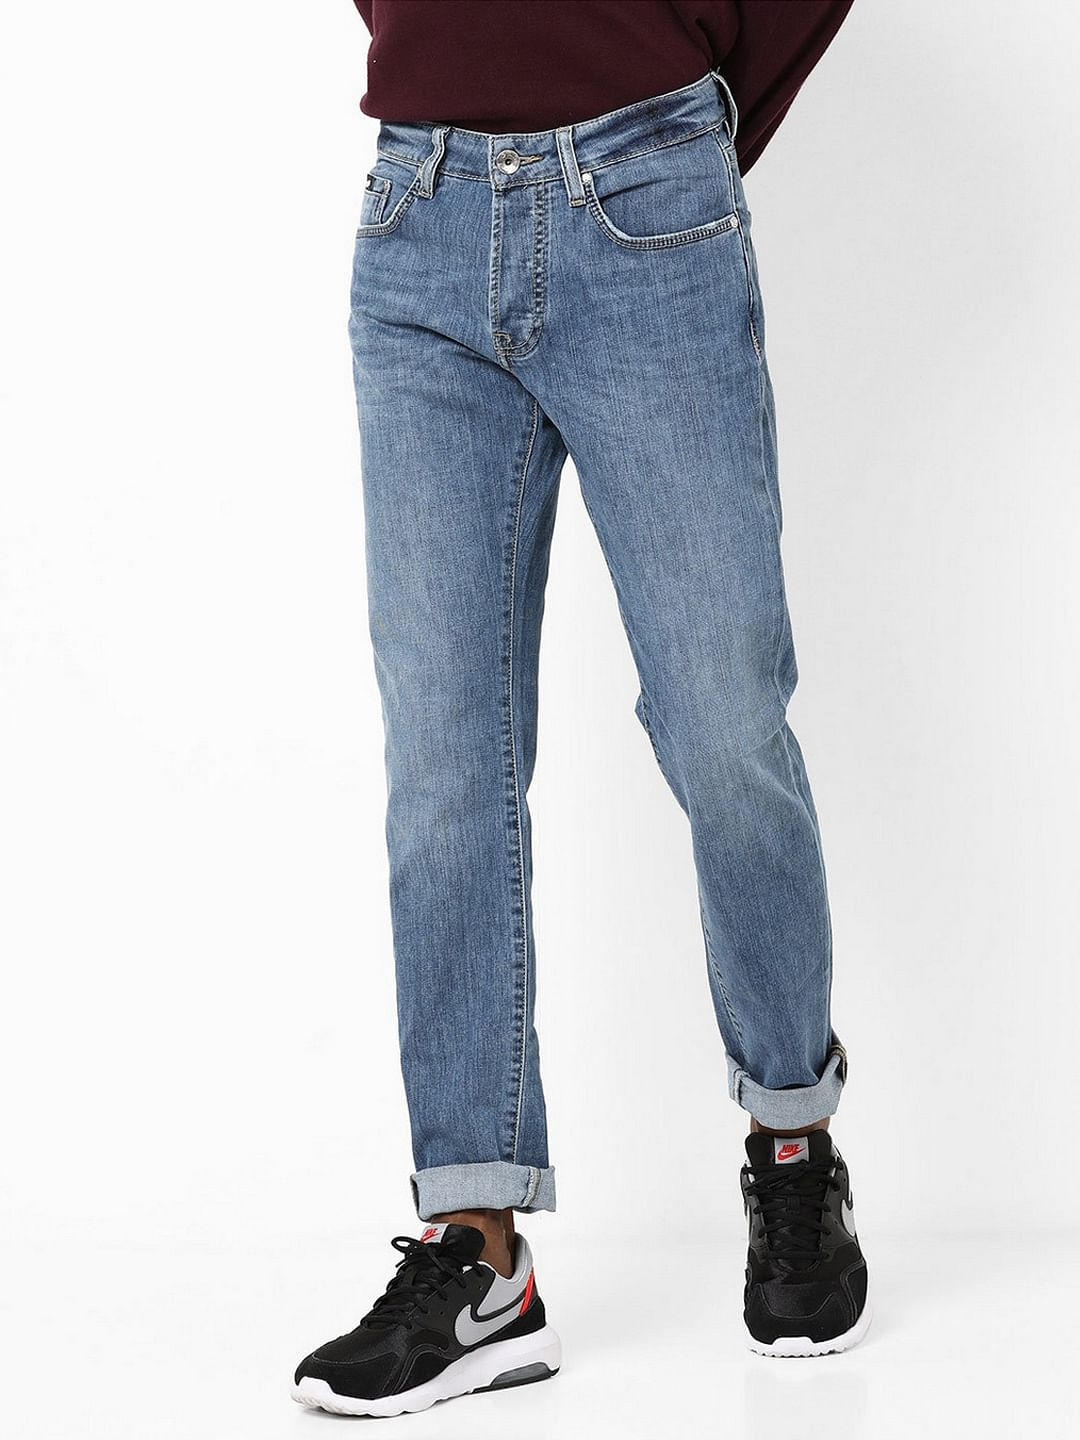 JEANS GAS GAS   Jeans   92835WK14